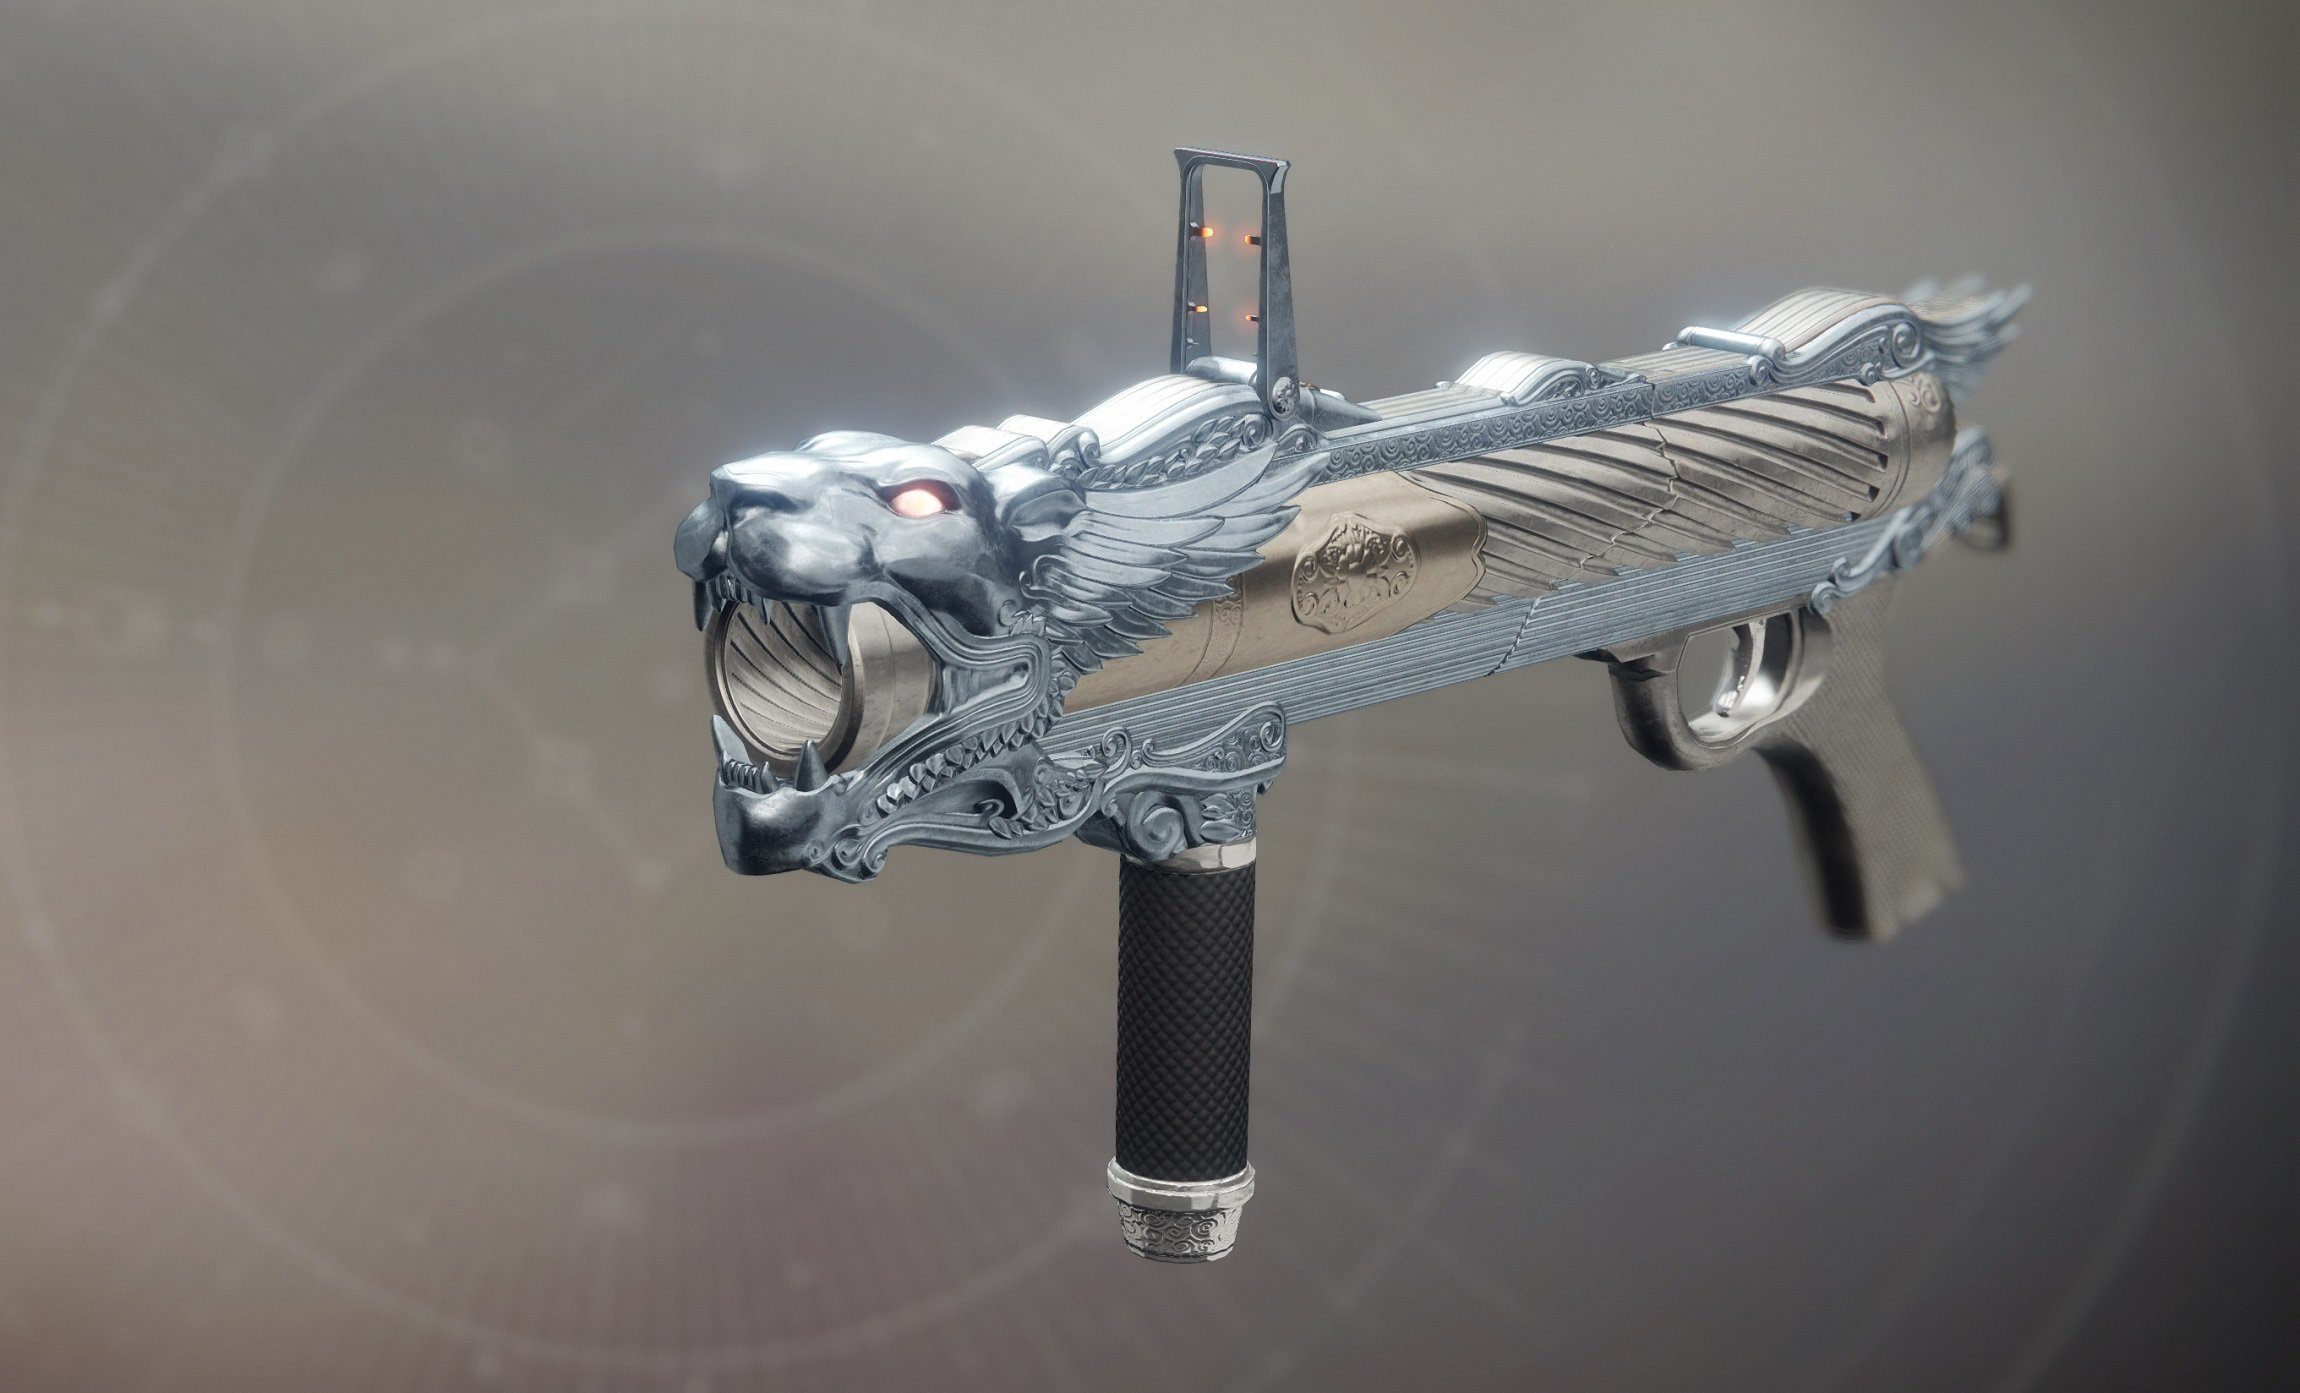 What Xur is selling in Destiny 2 January 31 2020